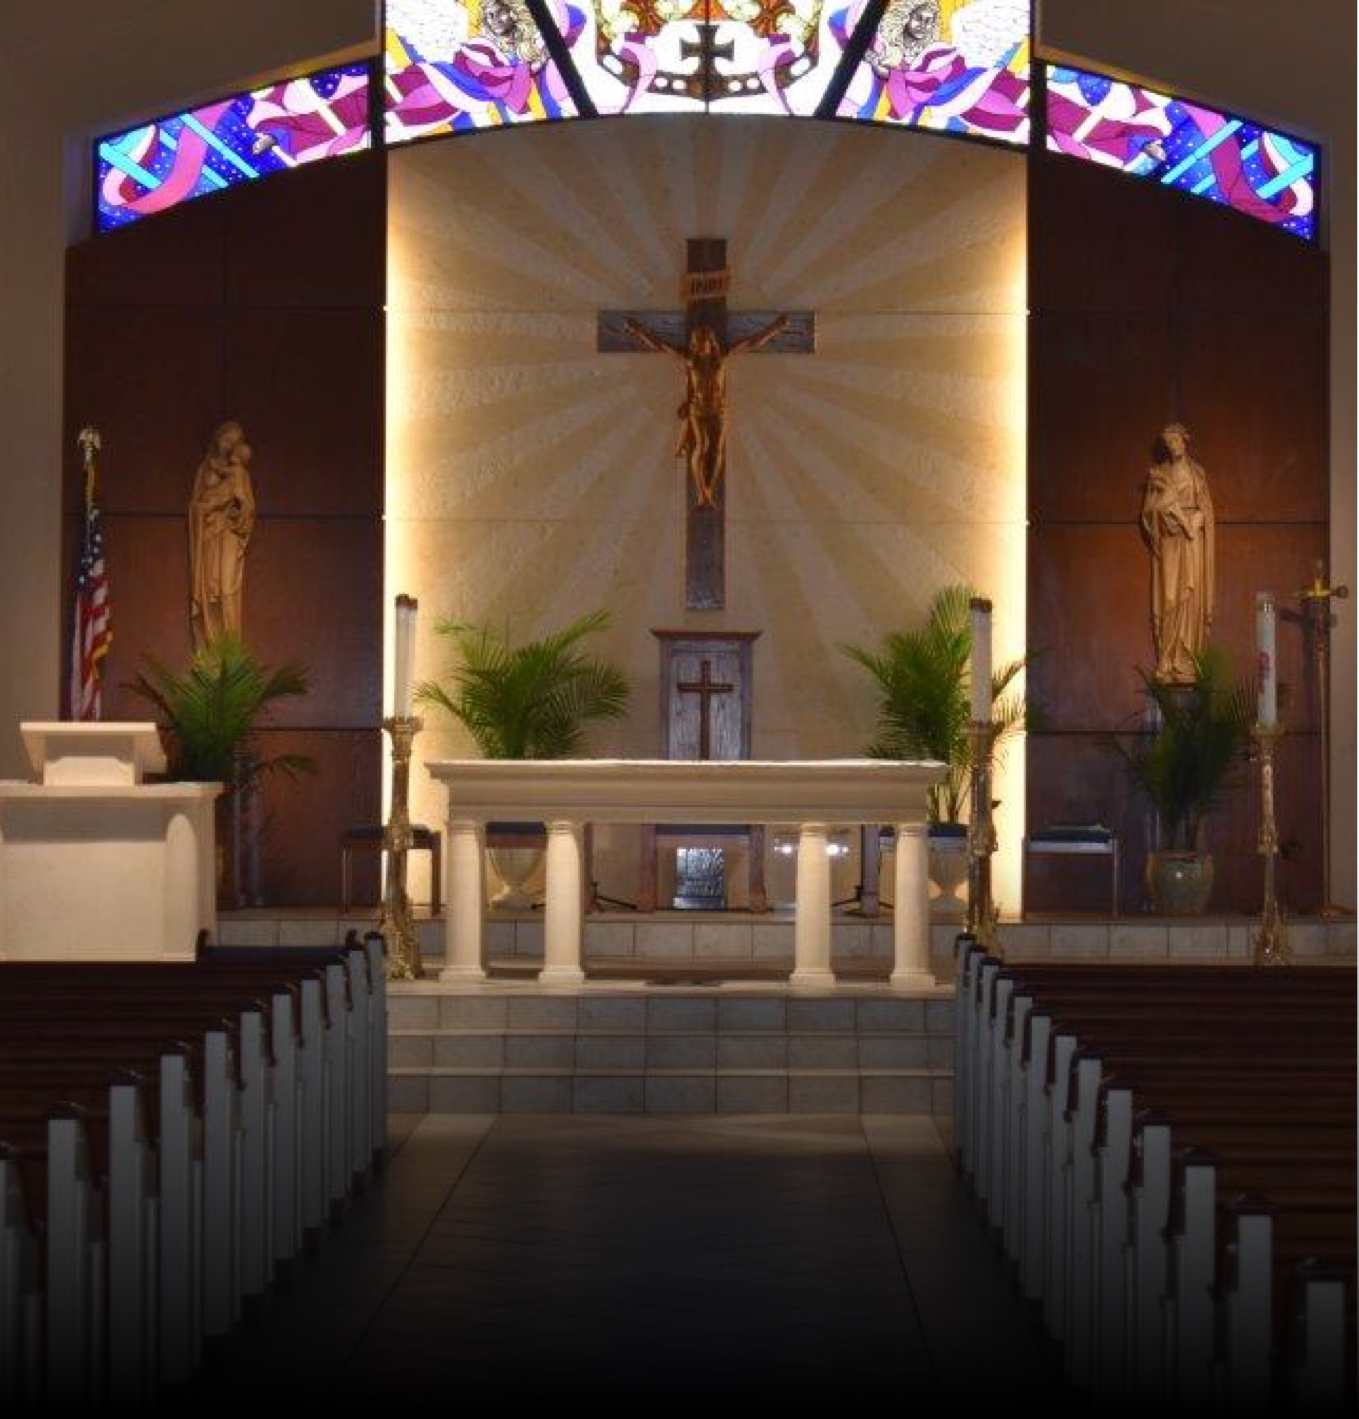 Interior view of new church build altar at St. Stephen's Catholic Church, Midlands, TX